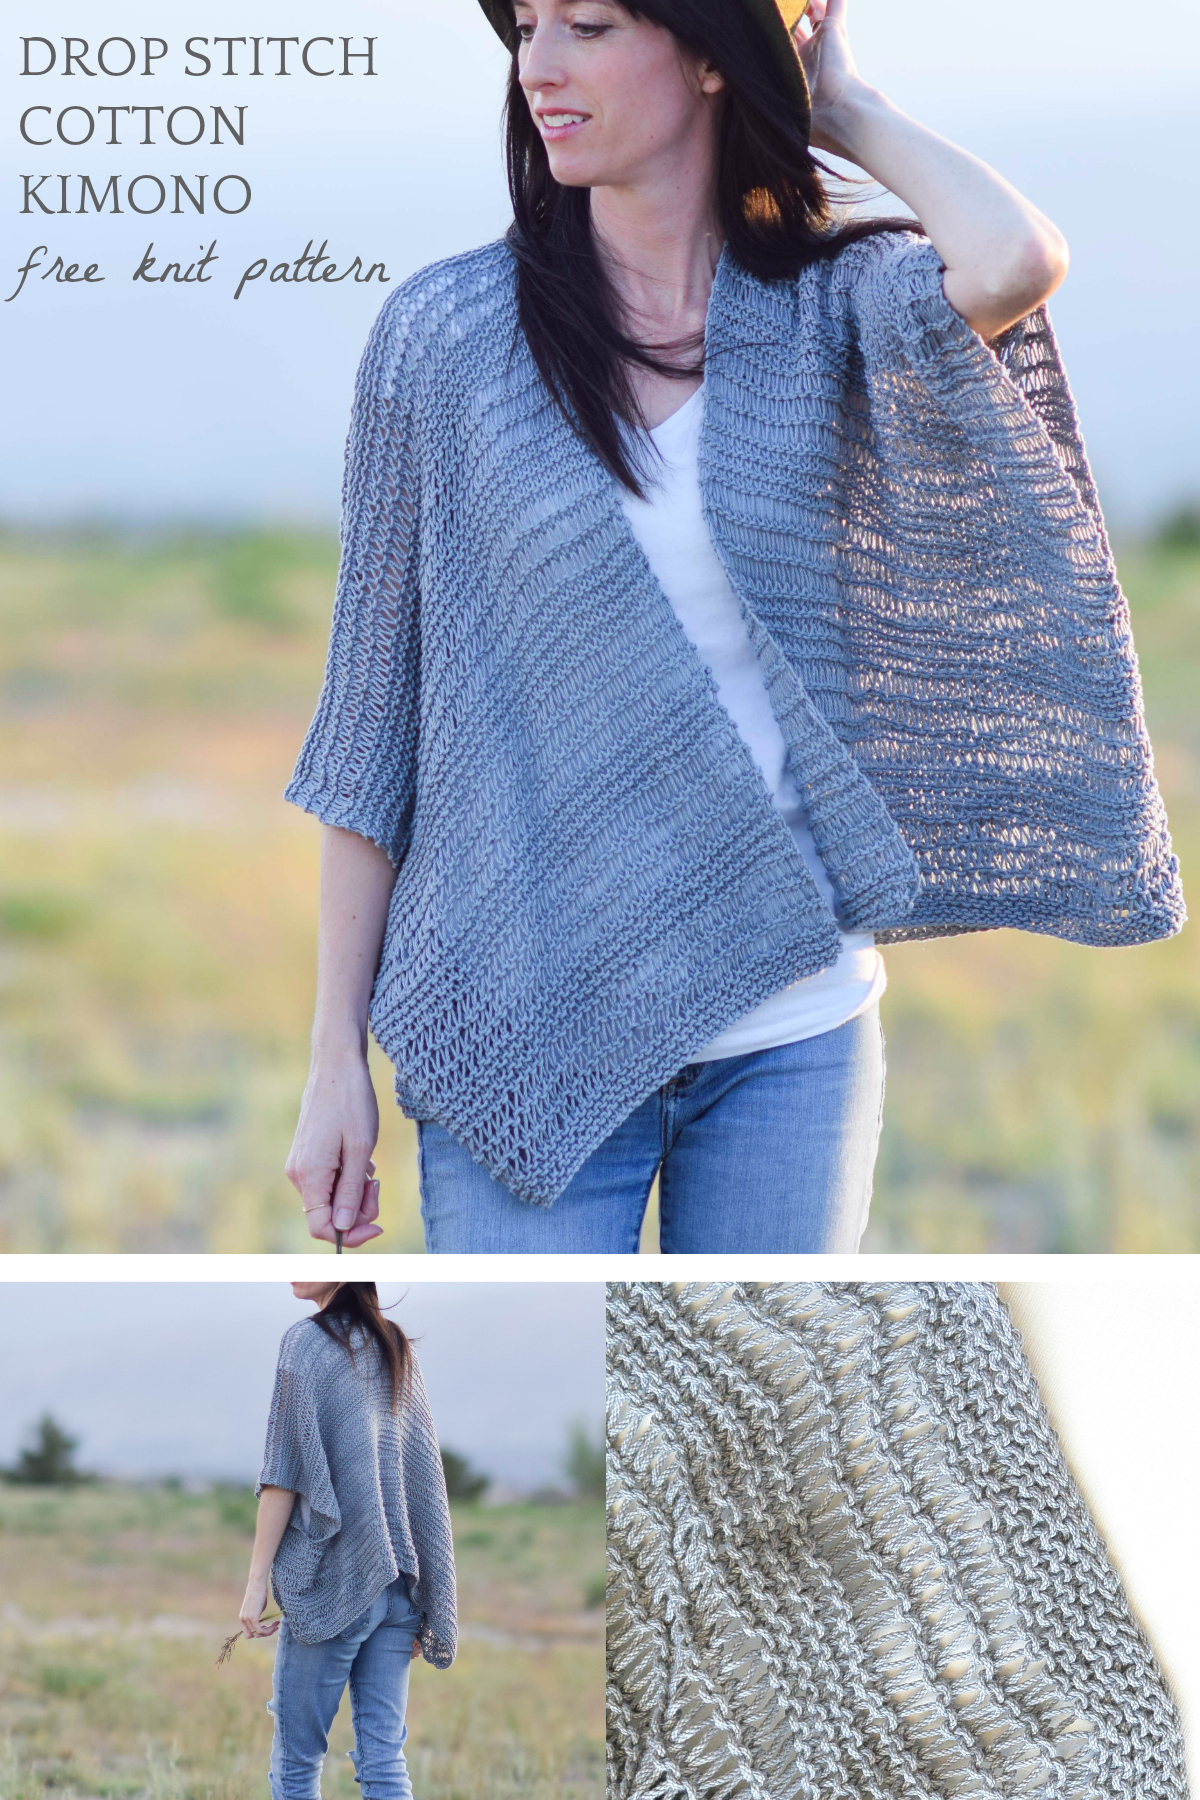 Free Knitting Pattern Sweater Drop Stitch Cotton Easy Kimono Knitting Pattern Mama In A Stitch